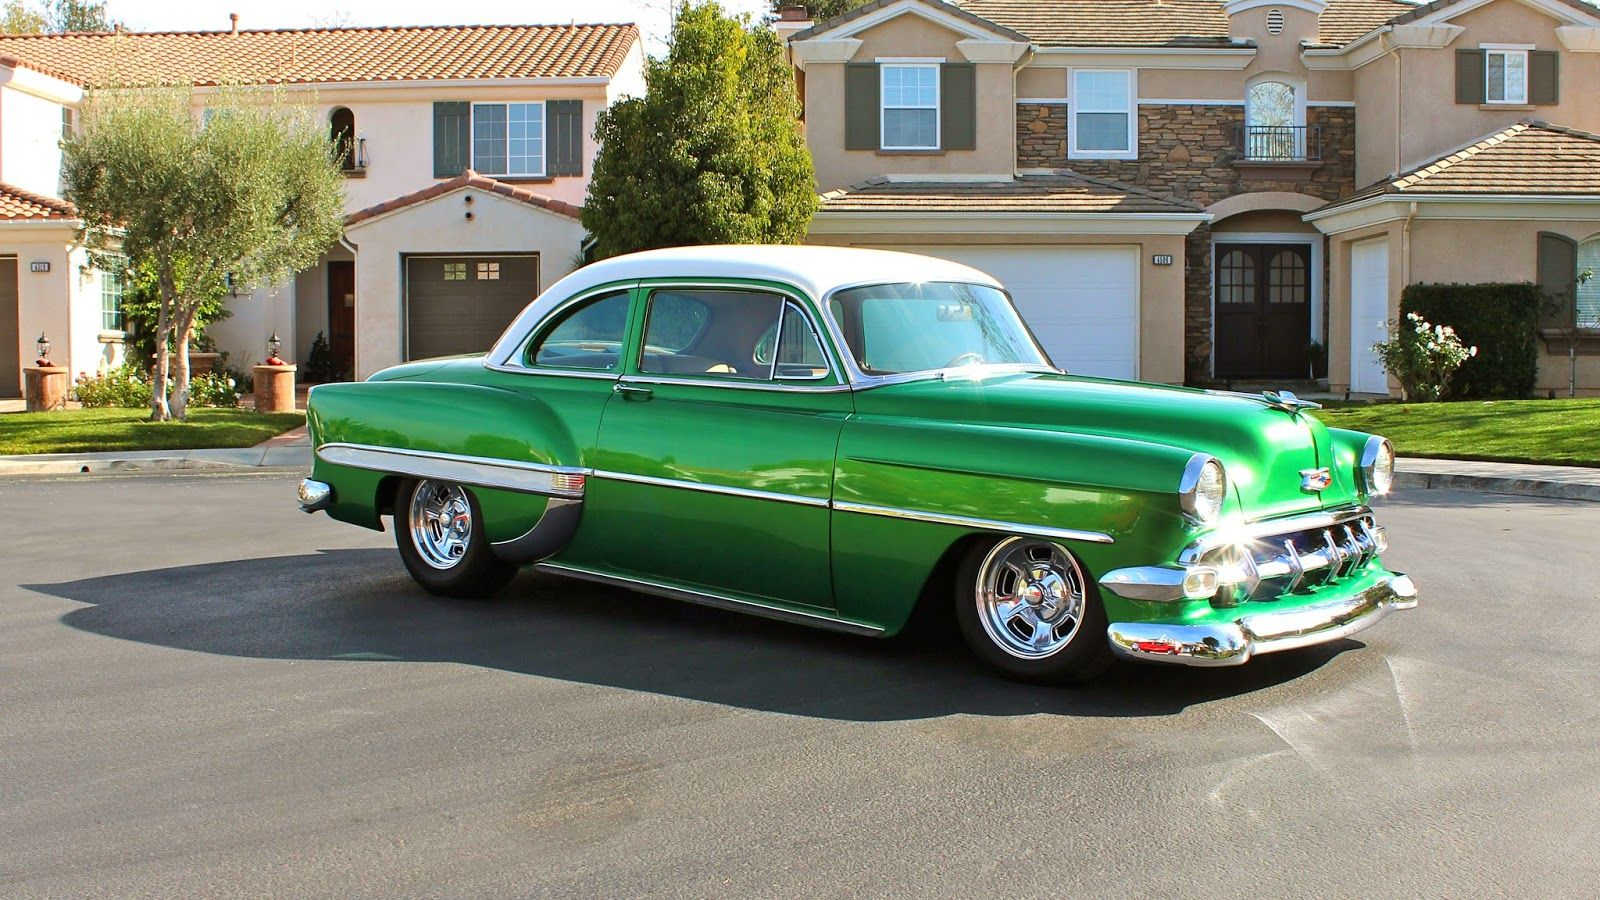 1953 Chevy Club Coupe from our March Catalog Cover